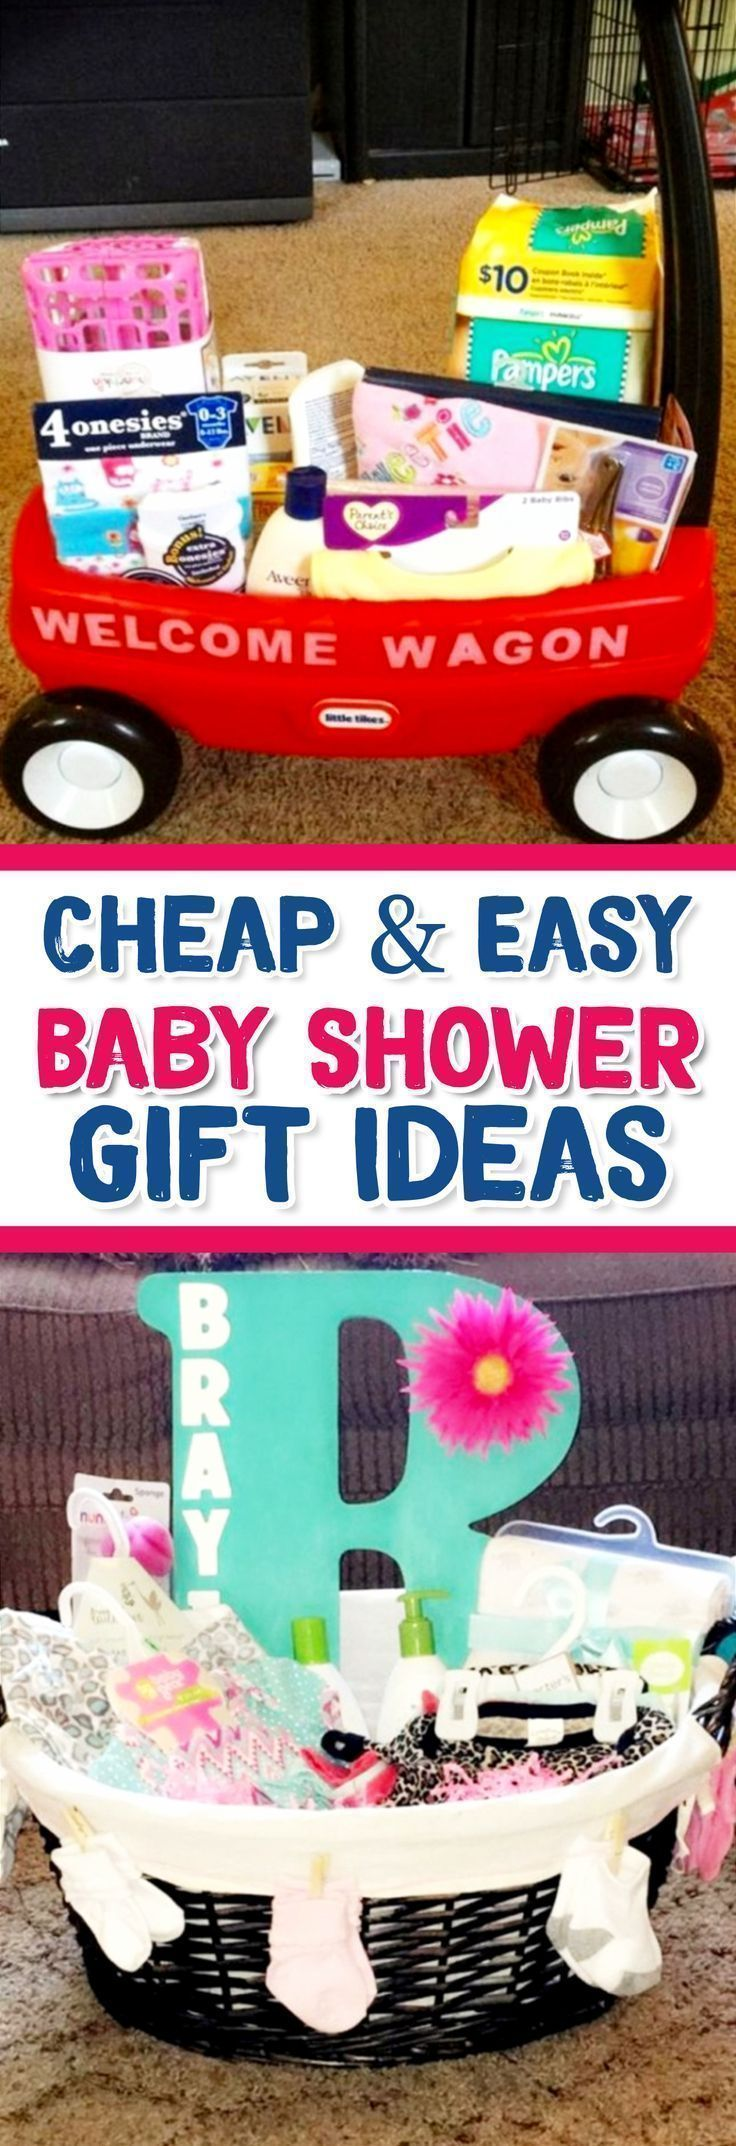 28 Affordable & Cheap Baby Shower Gift Ideas For Those on ...